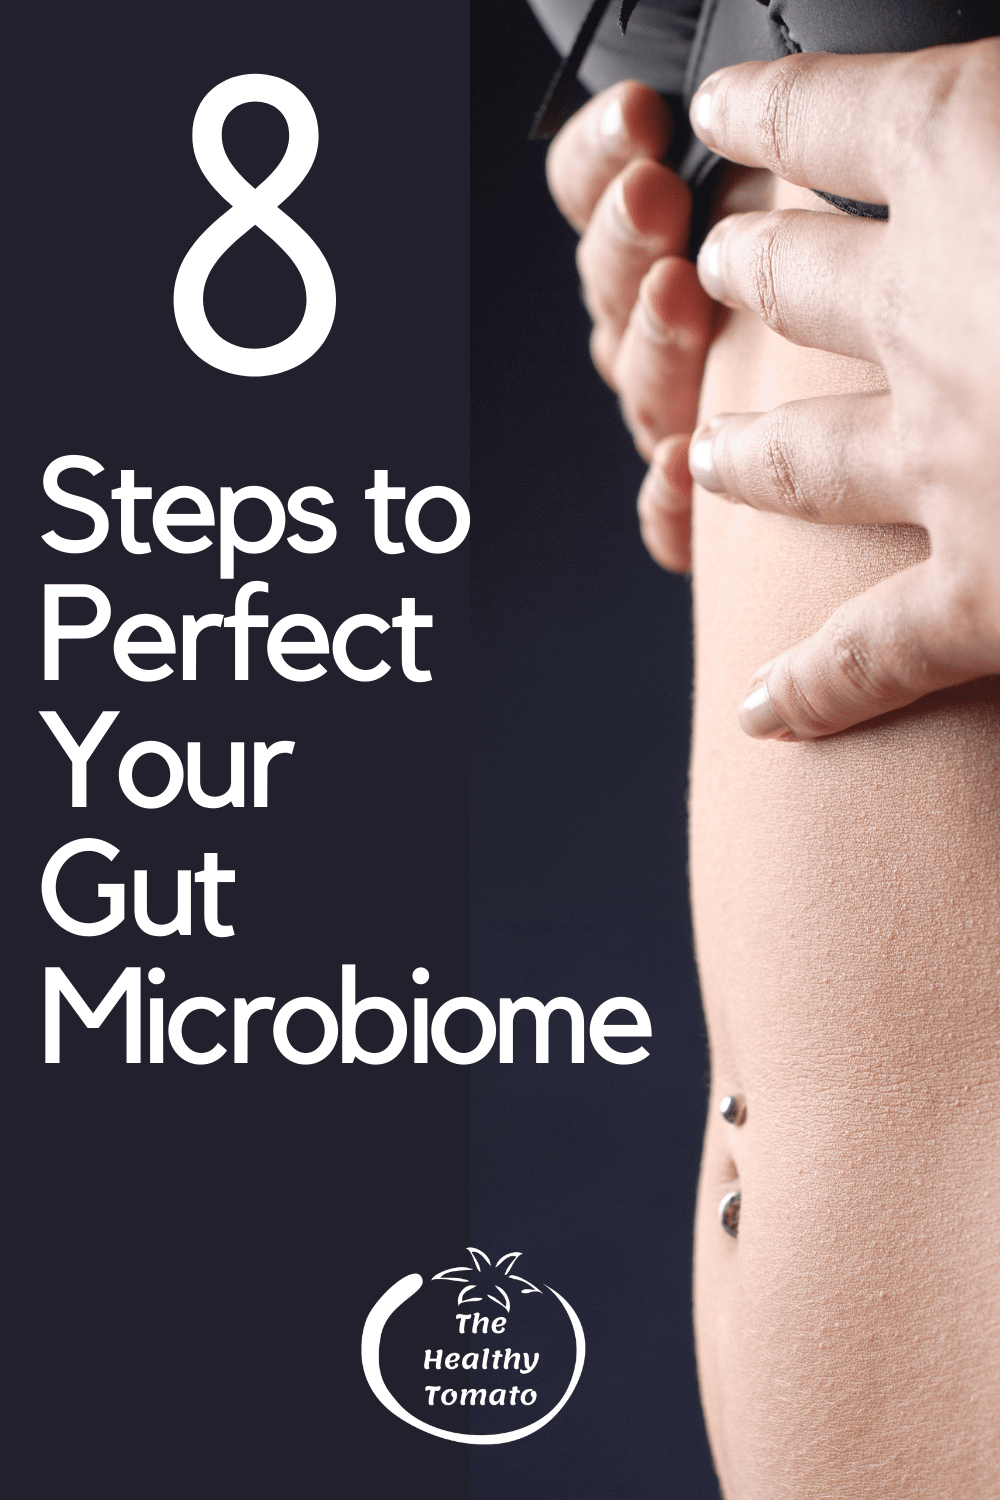 Everyone Needs to Know About Gut Microbiome and How to Perfect it